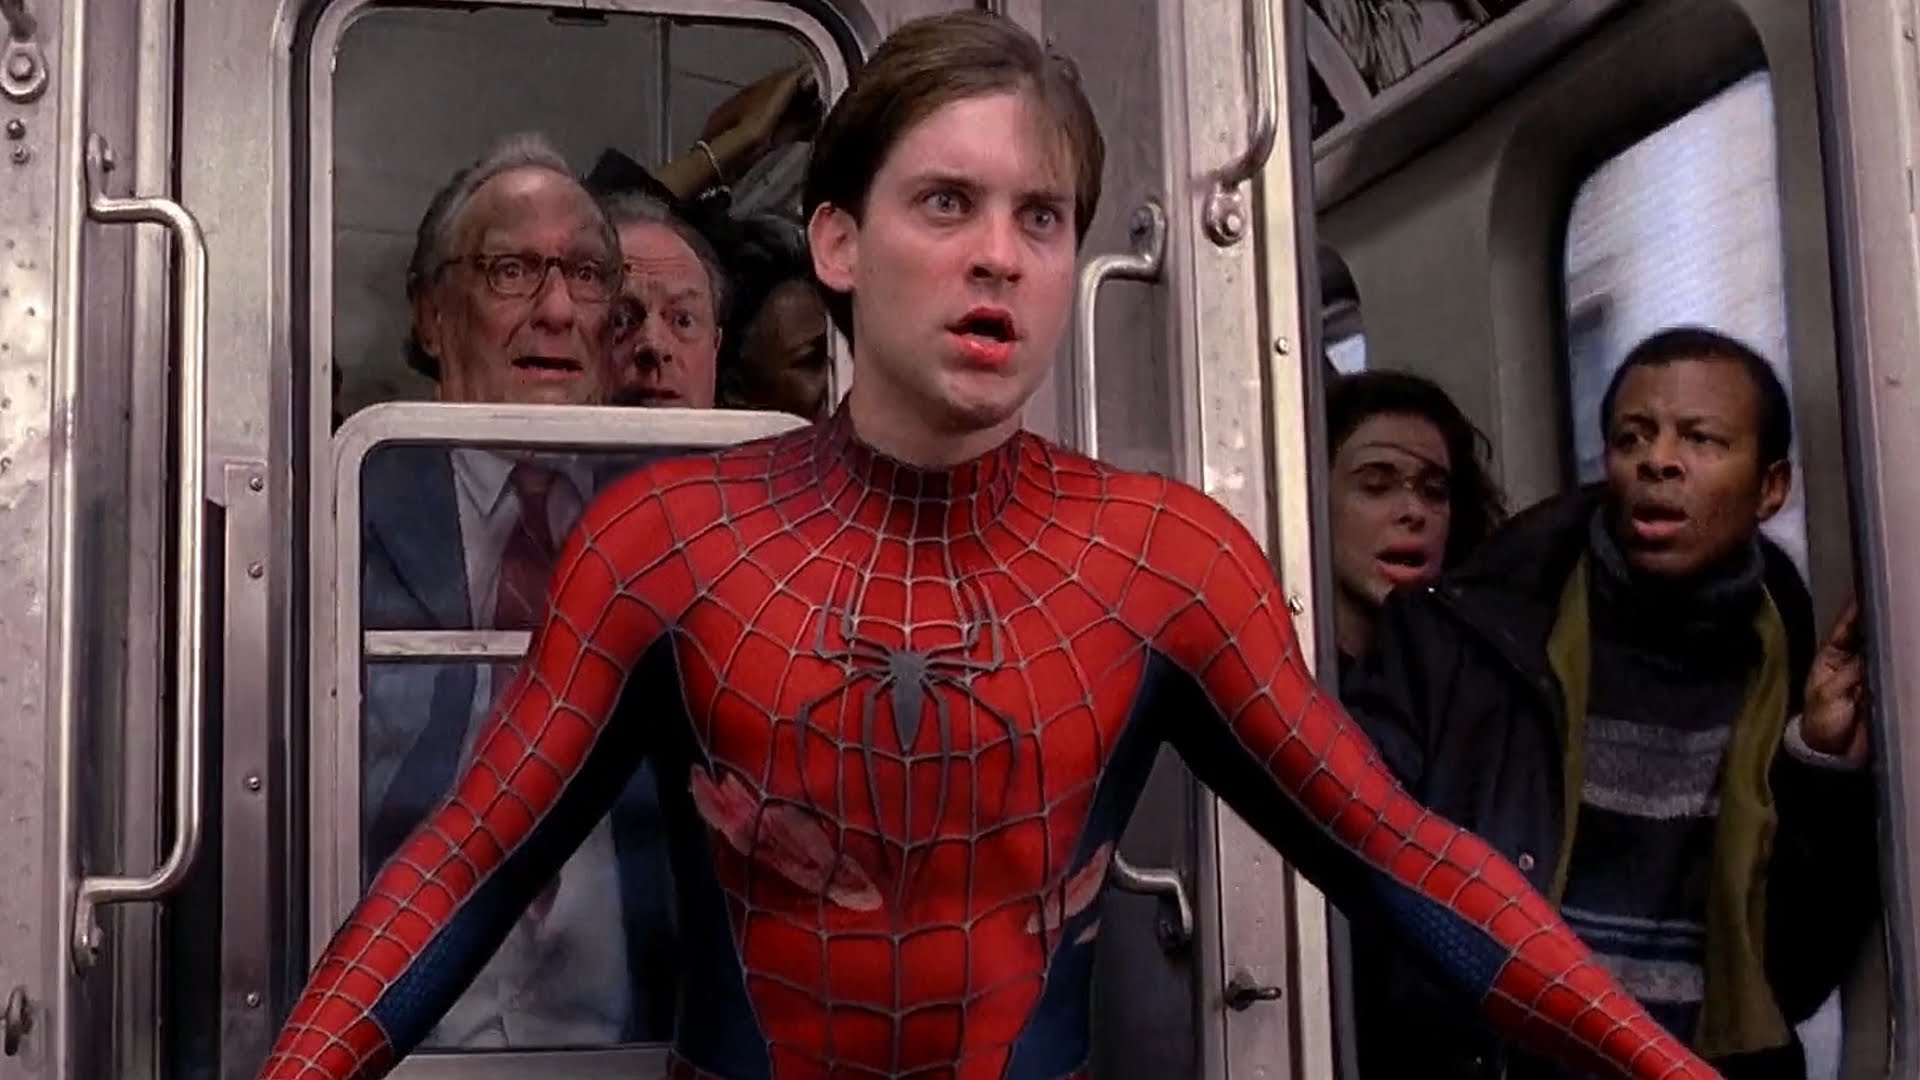 Spoiled Rotten 116: Revisiting Spider-Man 2